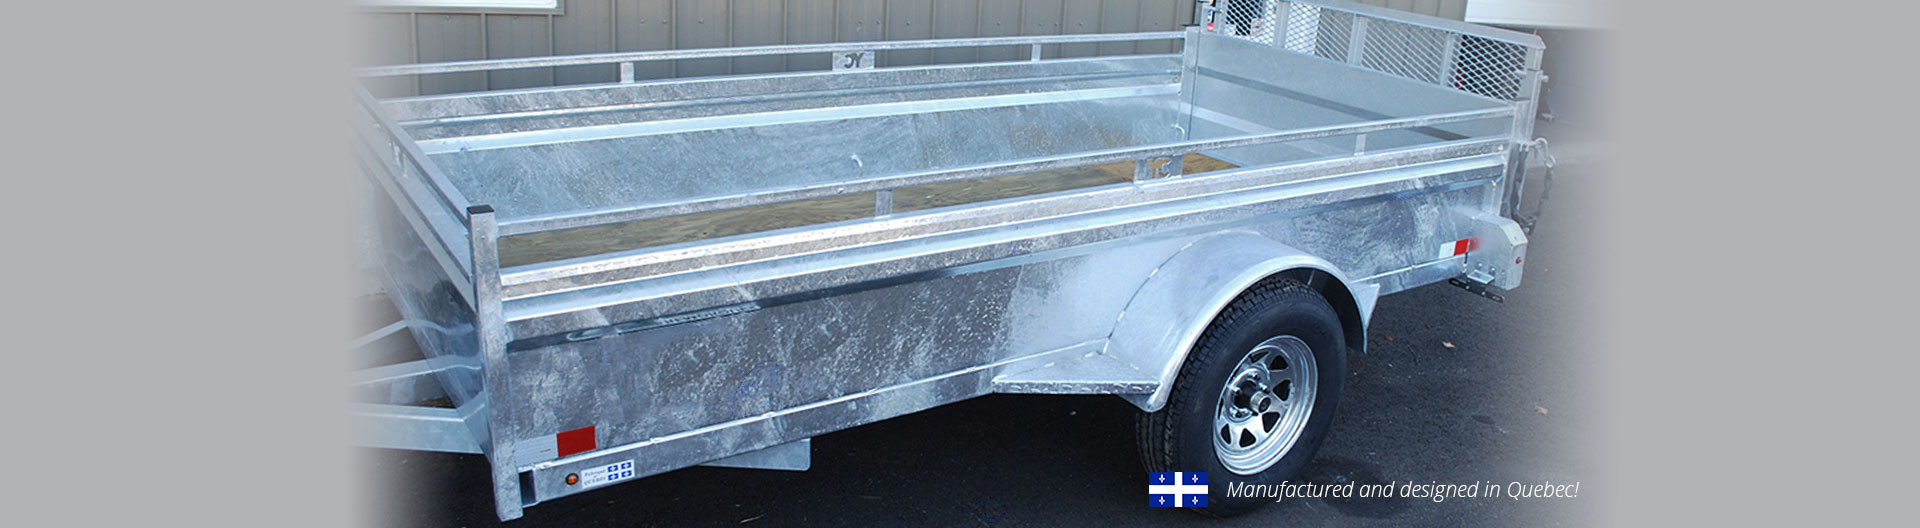 Custom trailers Laurentians trailers PAC